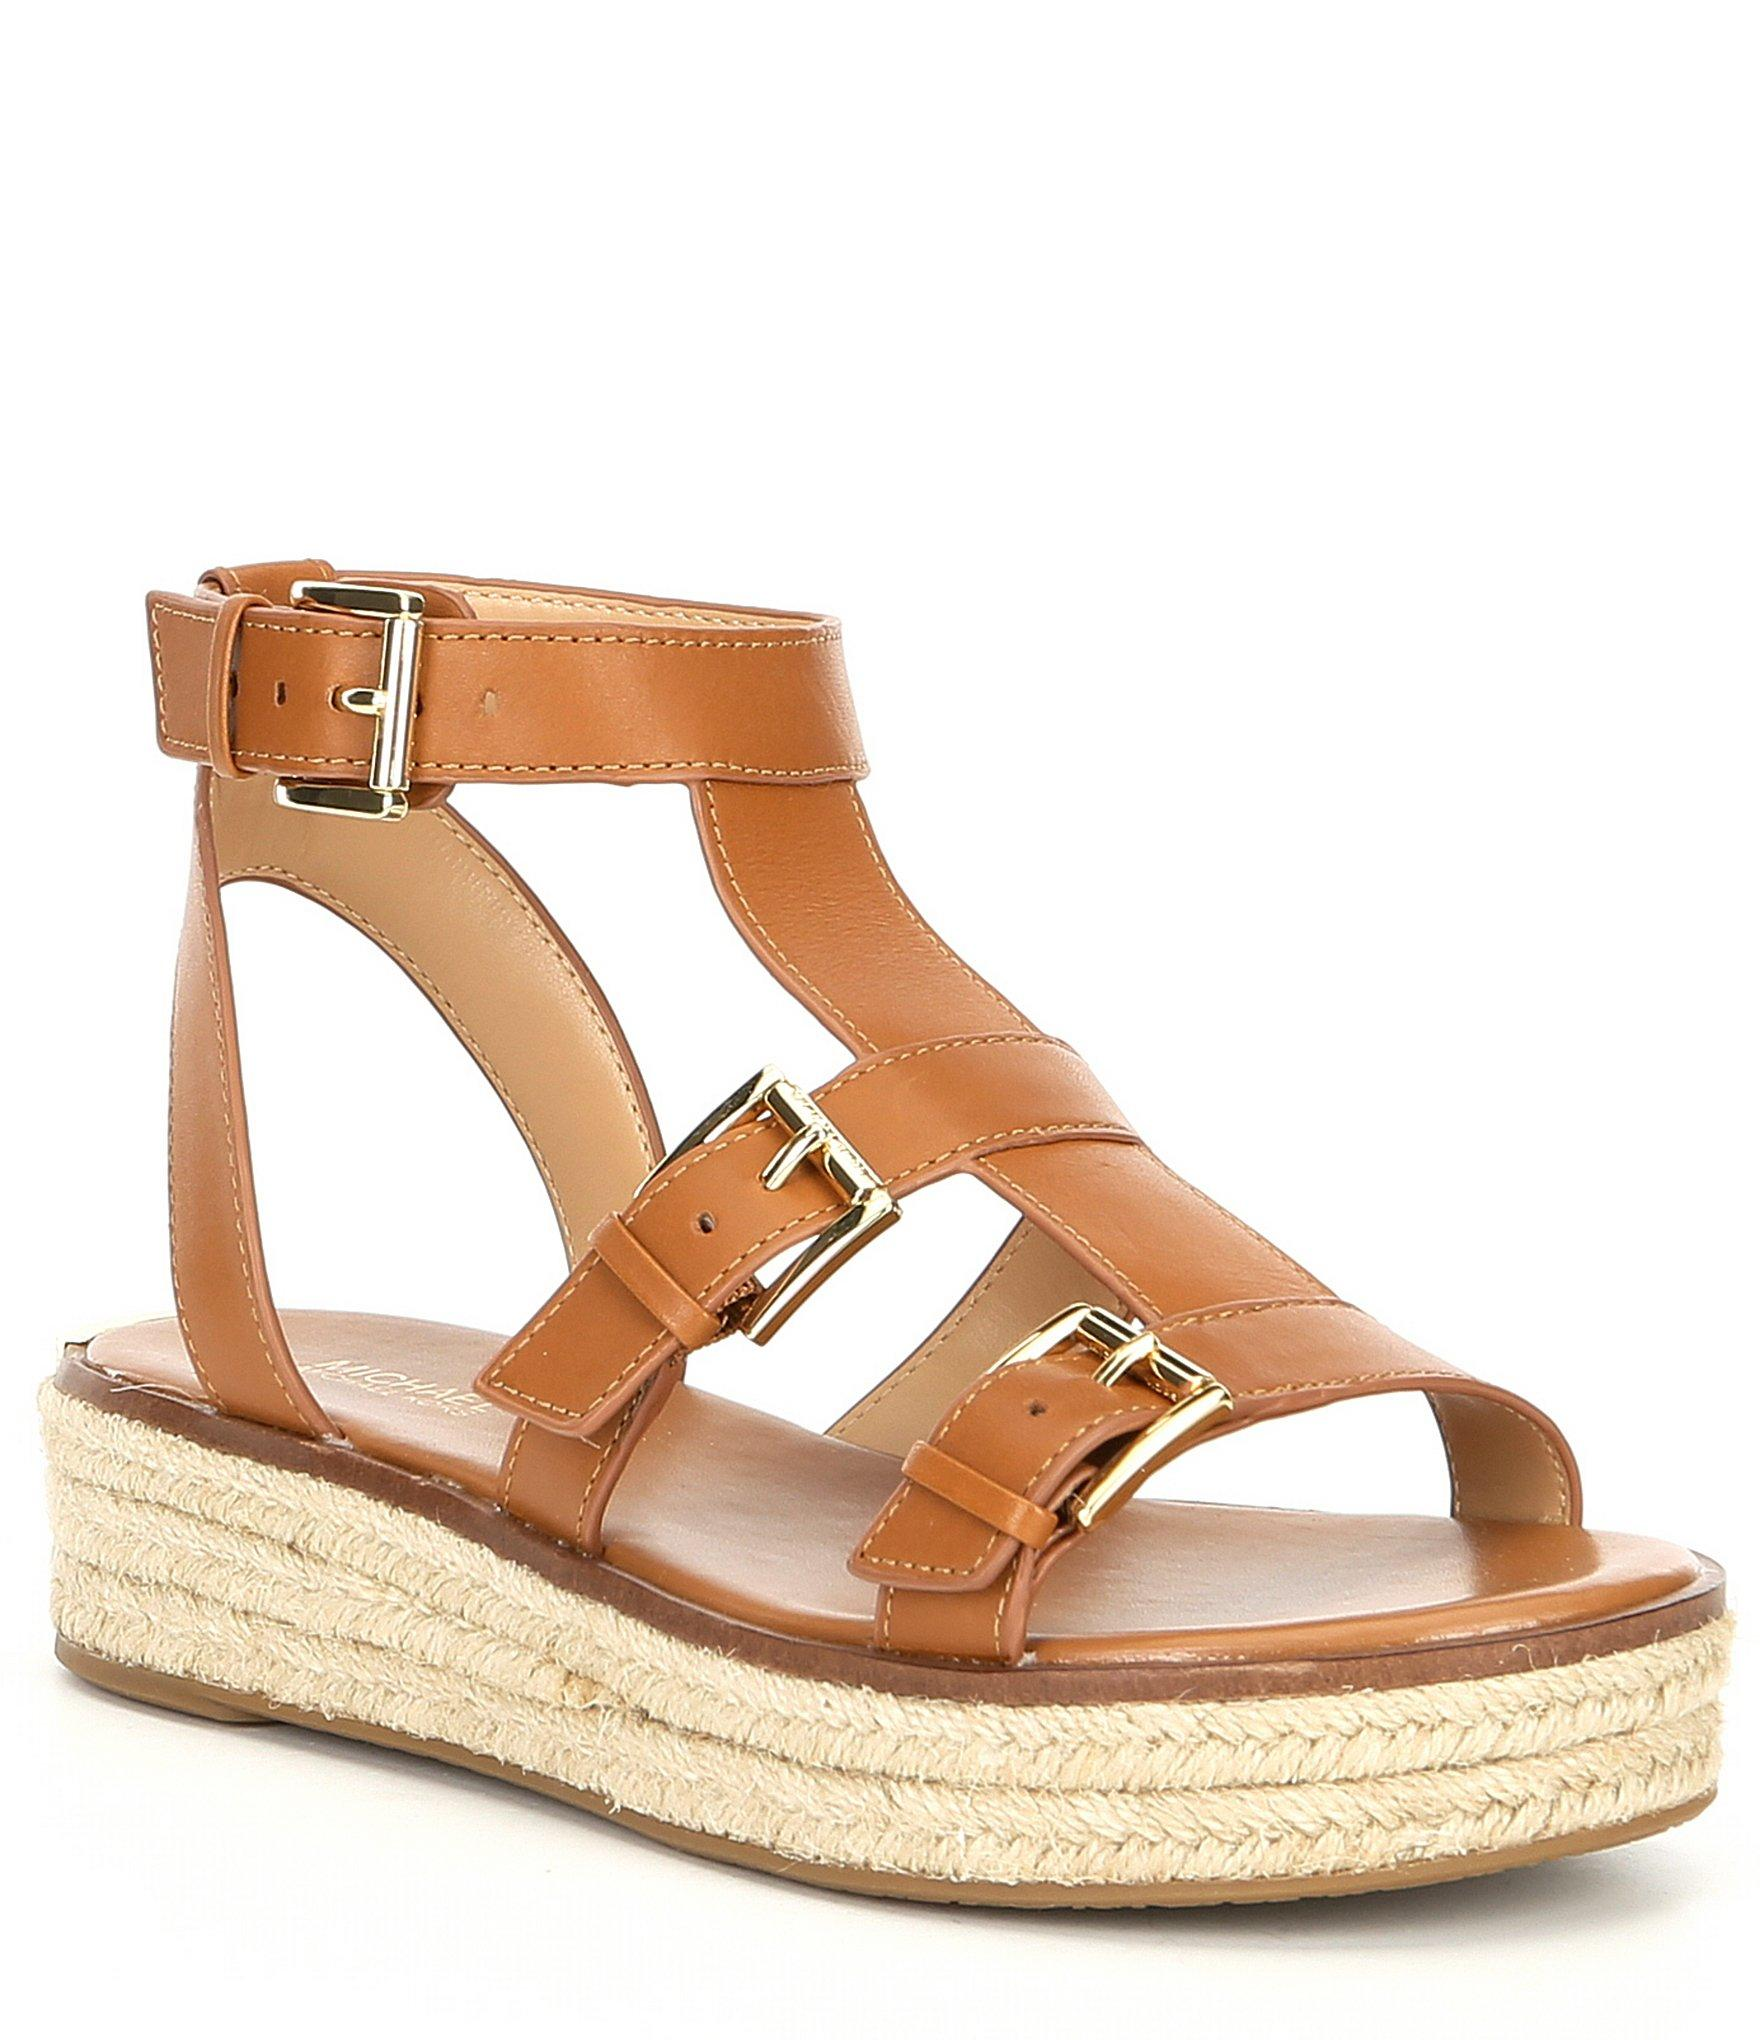 cd9c42f7eb7d Lyst - MICHAEL Michael Kors Cunningham Vachetta Leather Sandals in Brown